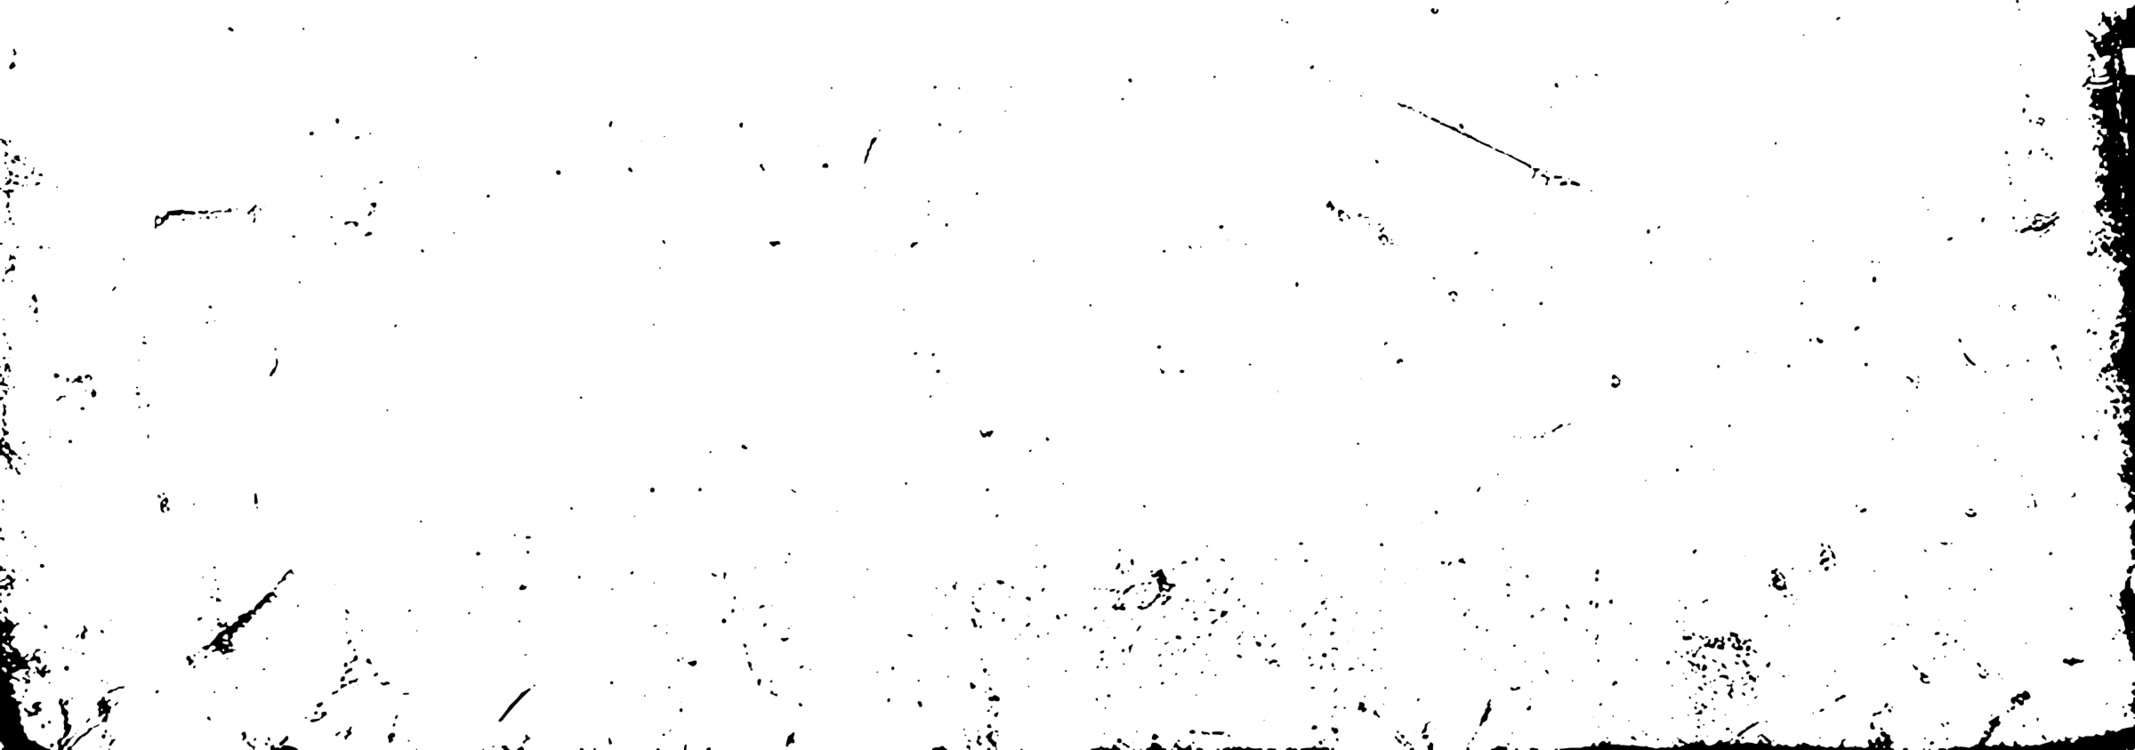 White grunge png. Computer icons black and